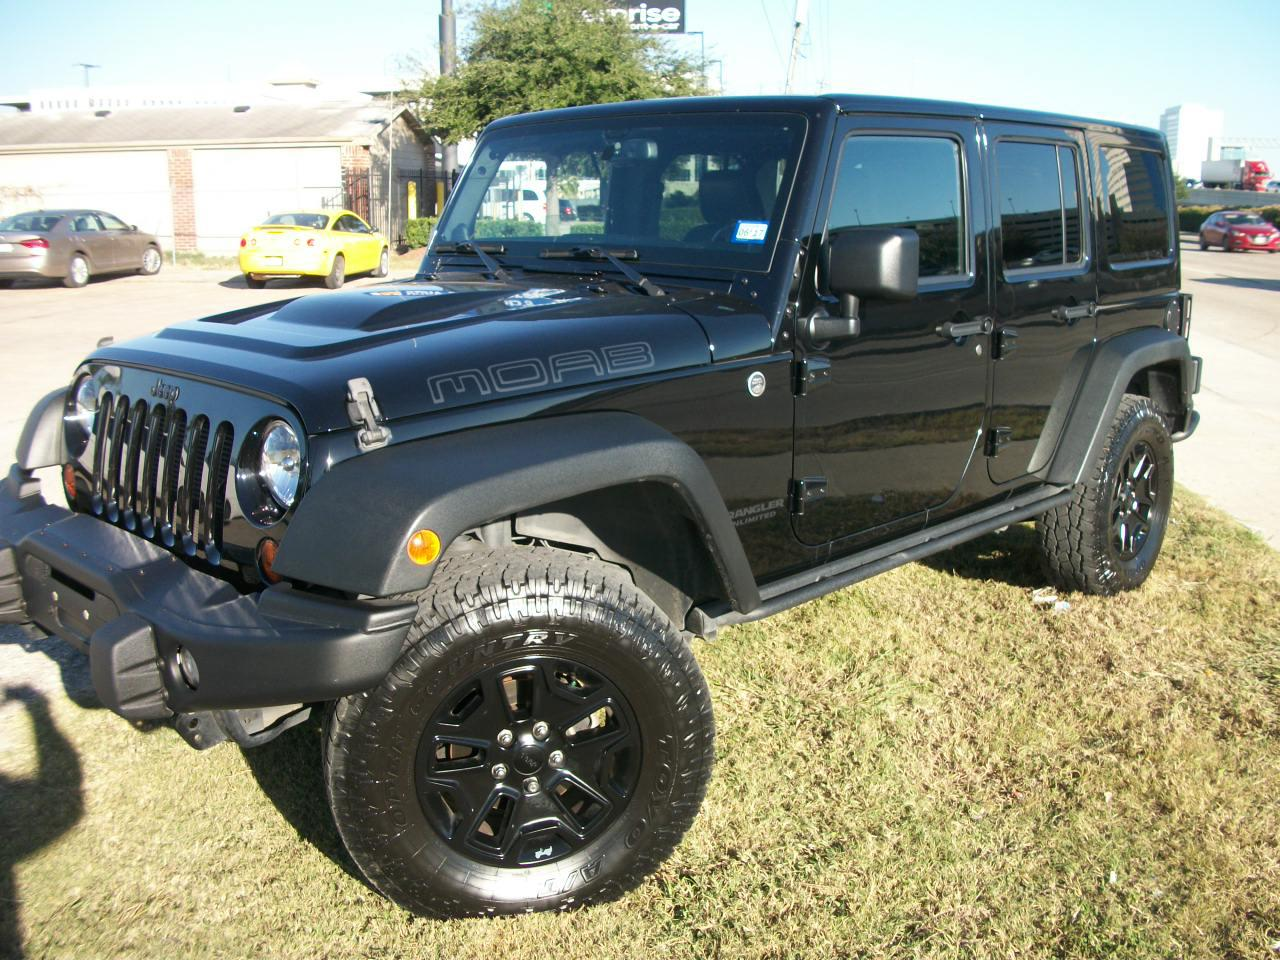 2013 jeep wrandler unlimited moab unlimited sahara sport utility 4 door ebay. Black Bedroom Furniture Sets. Home Design Ideas